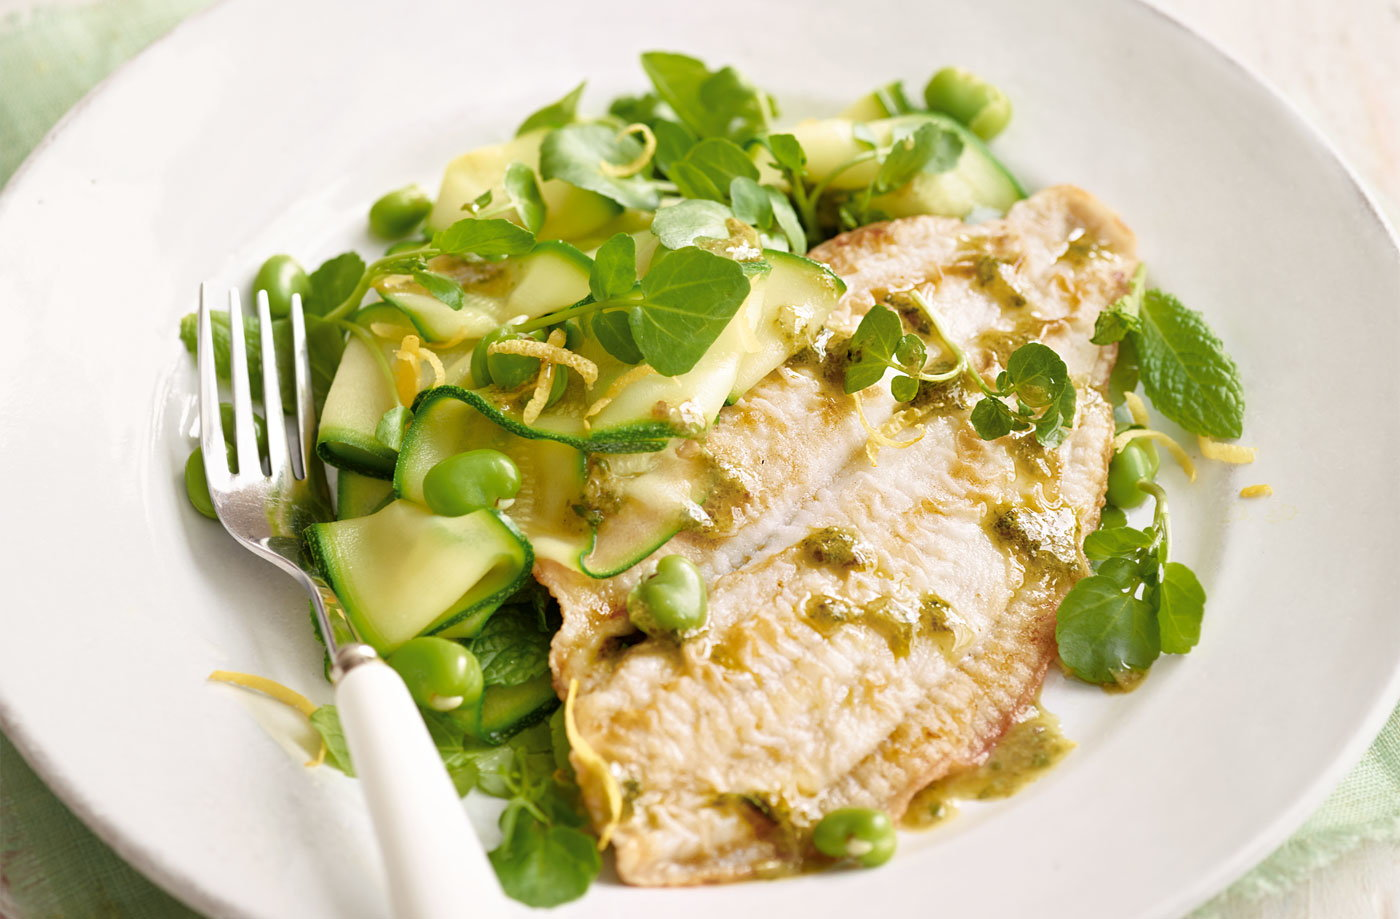 Pan-fried plaice with minty green salad recipe